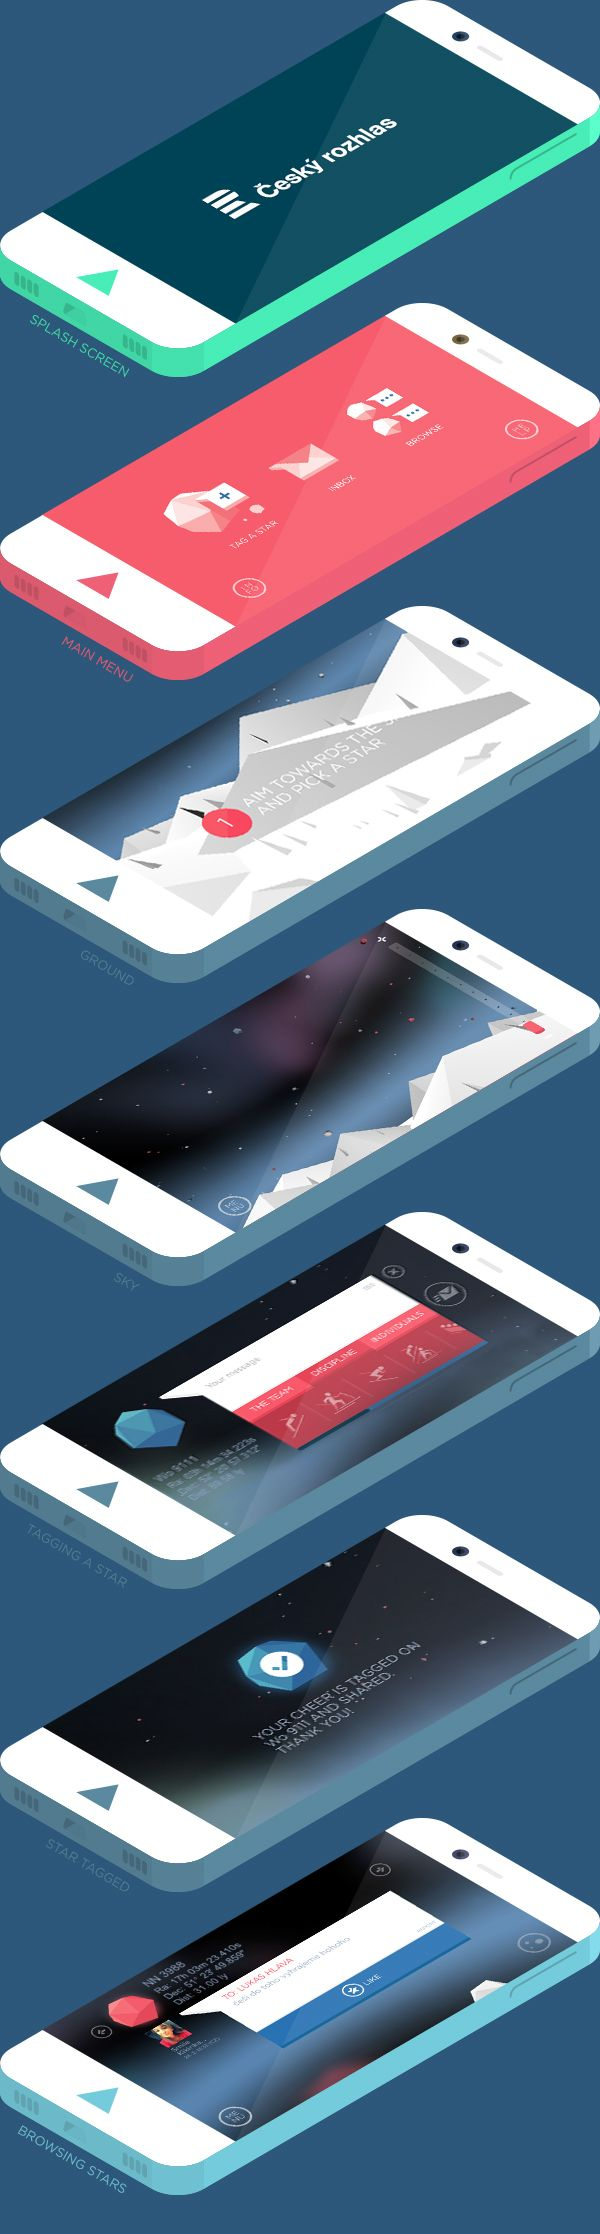 FANSTARS.APP by AARGH, via Behance